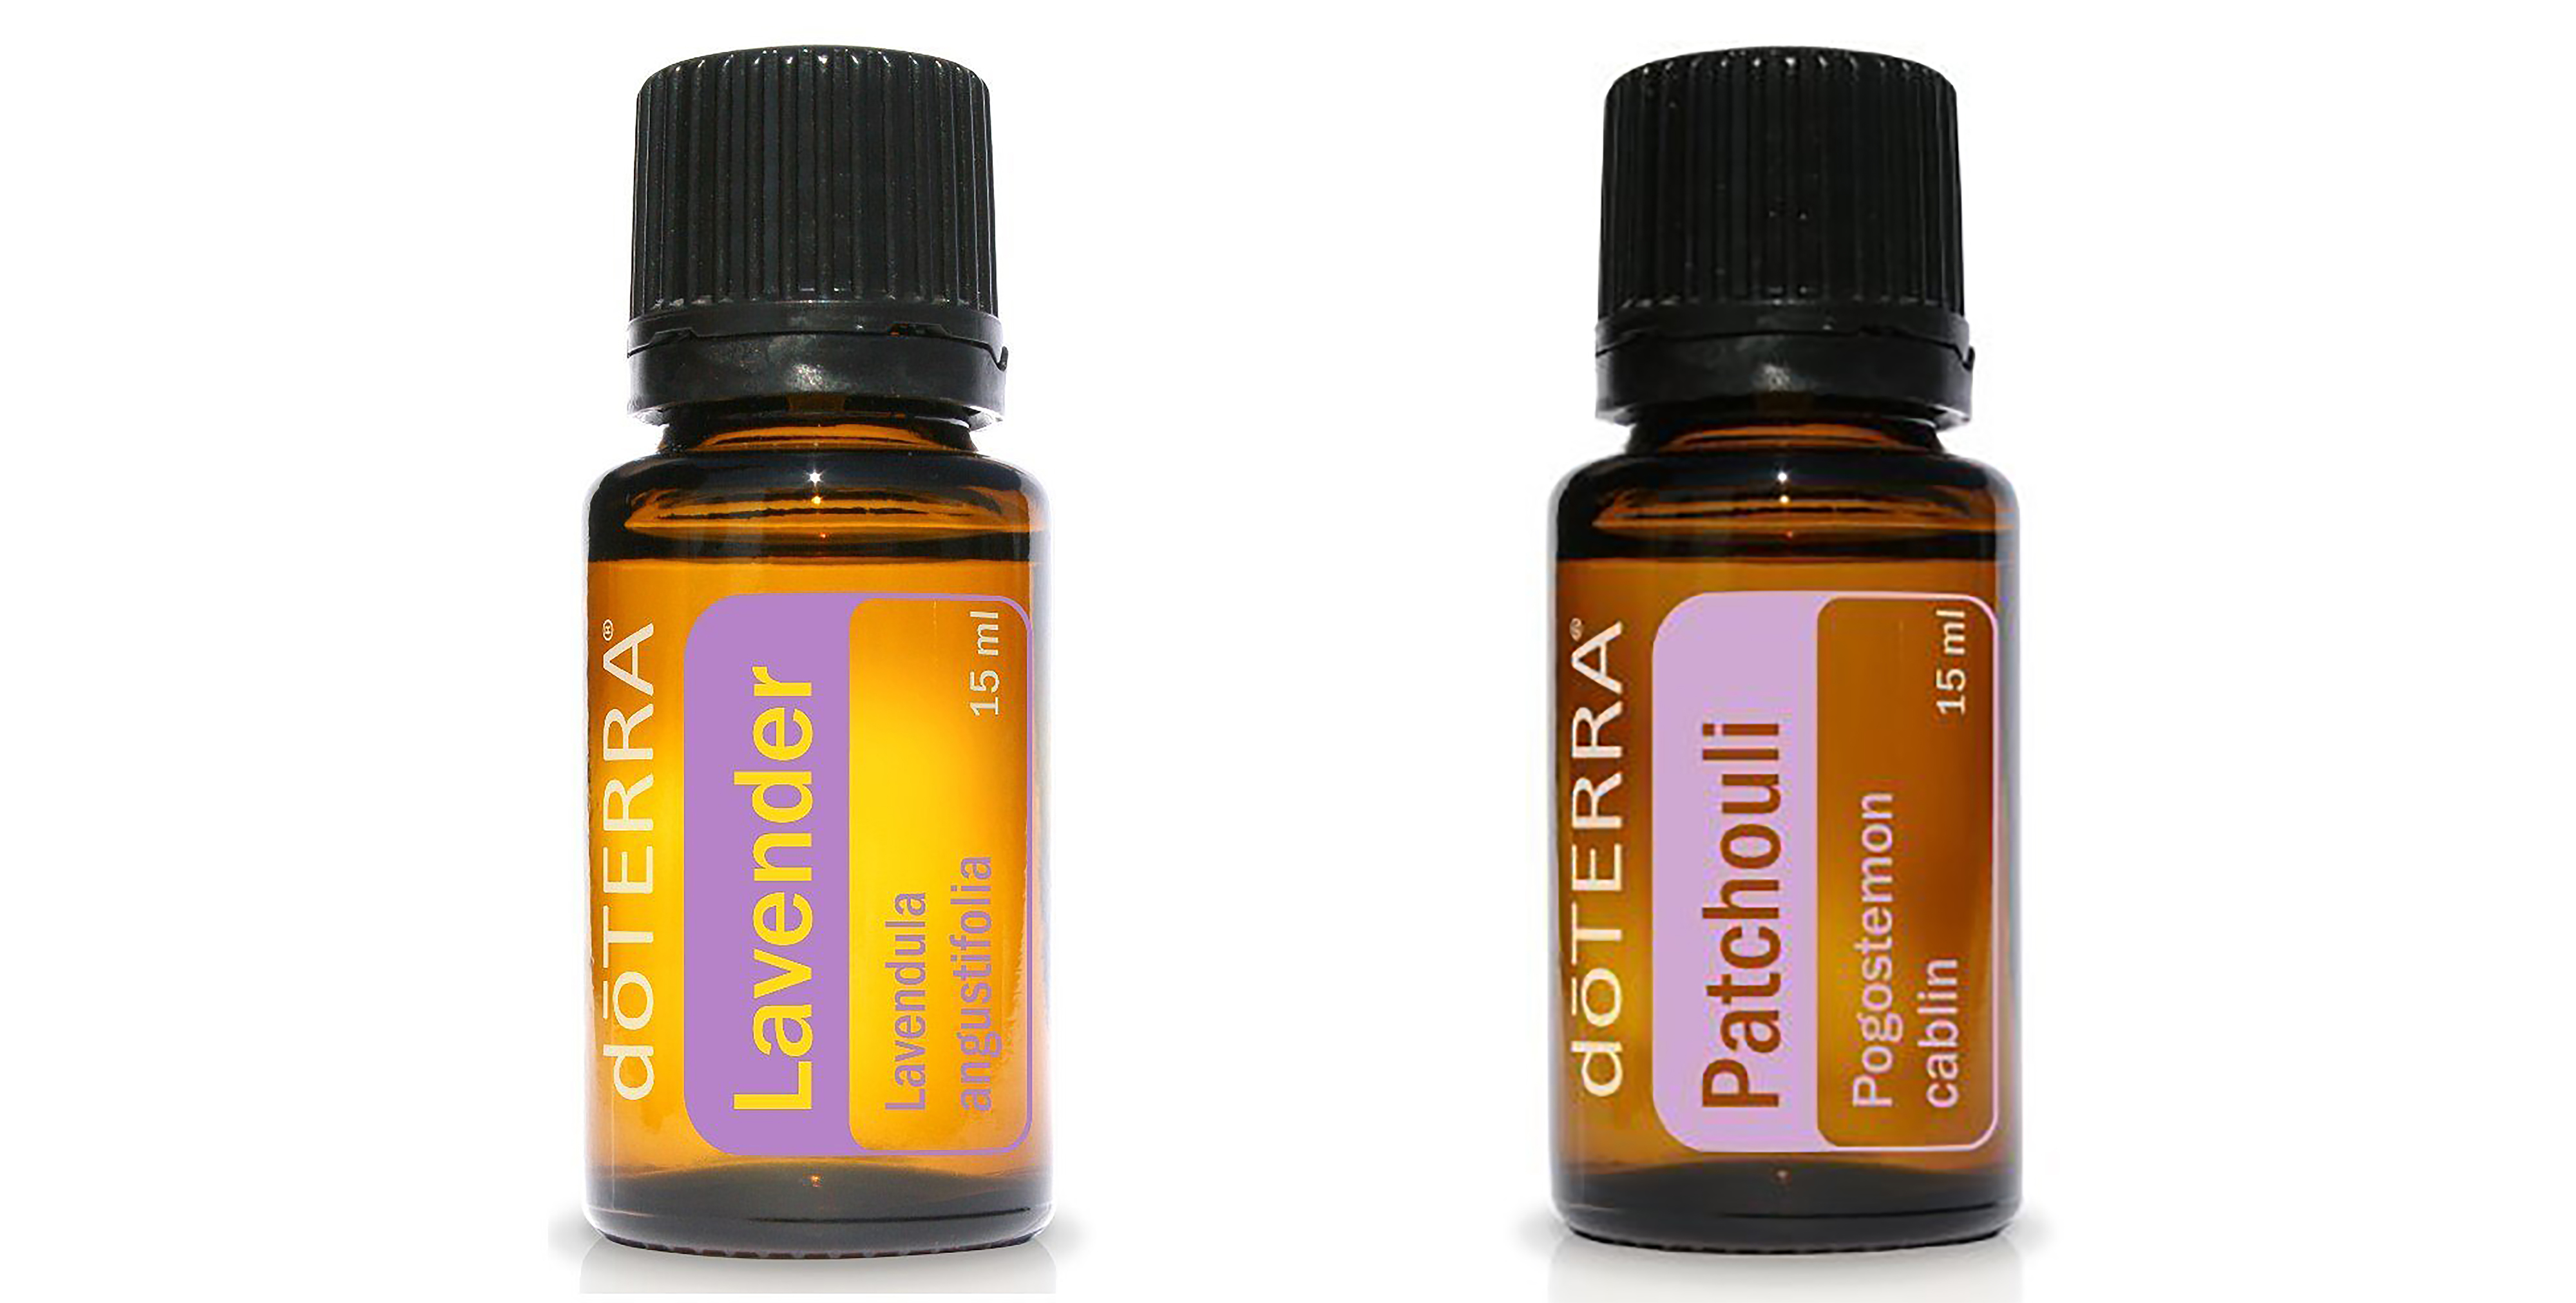 Doterra Lavender and Patchouli Essential Oils